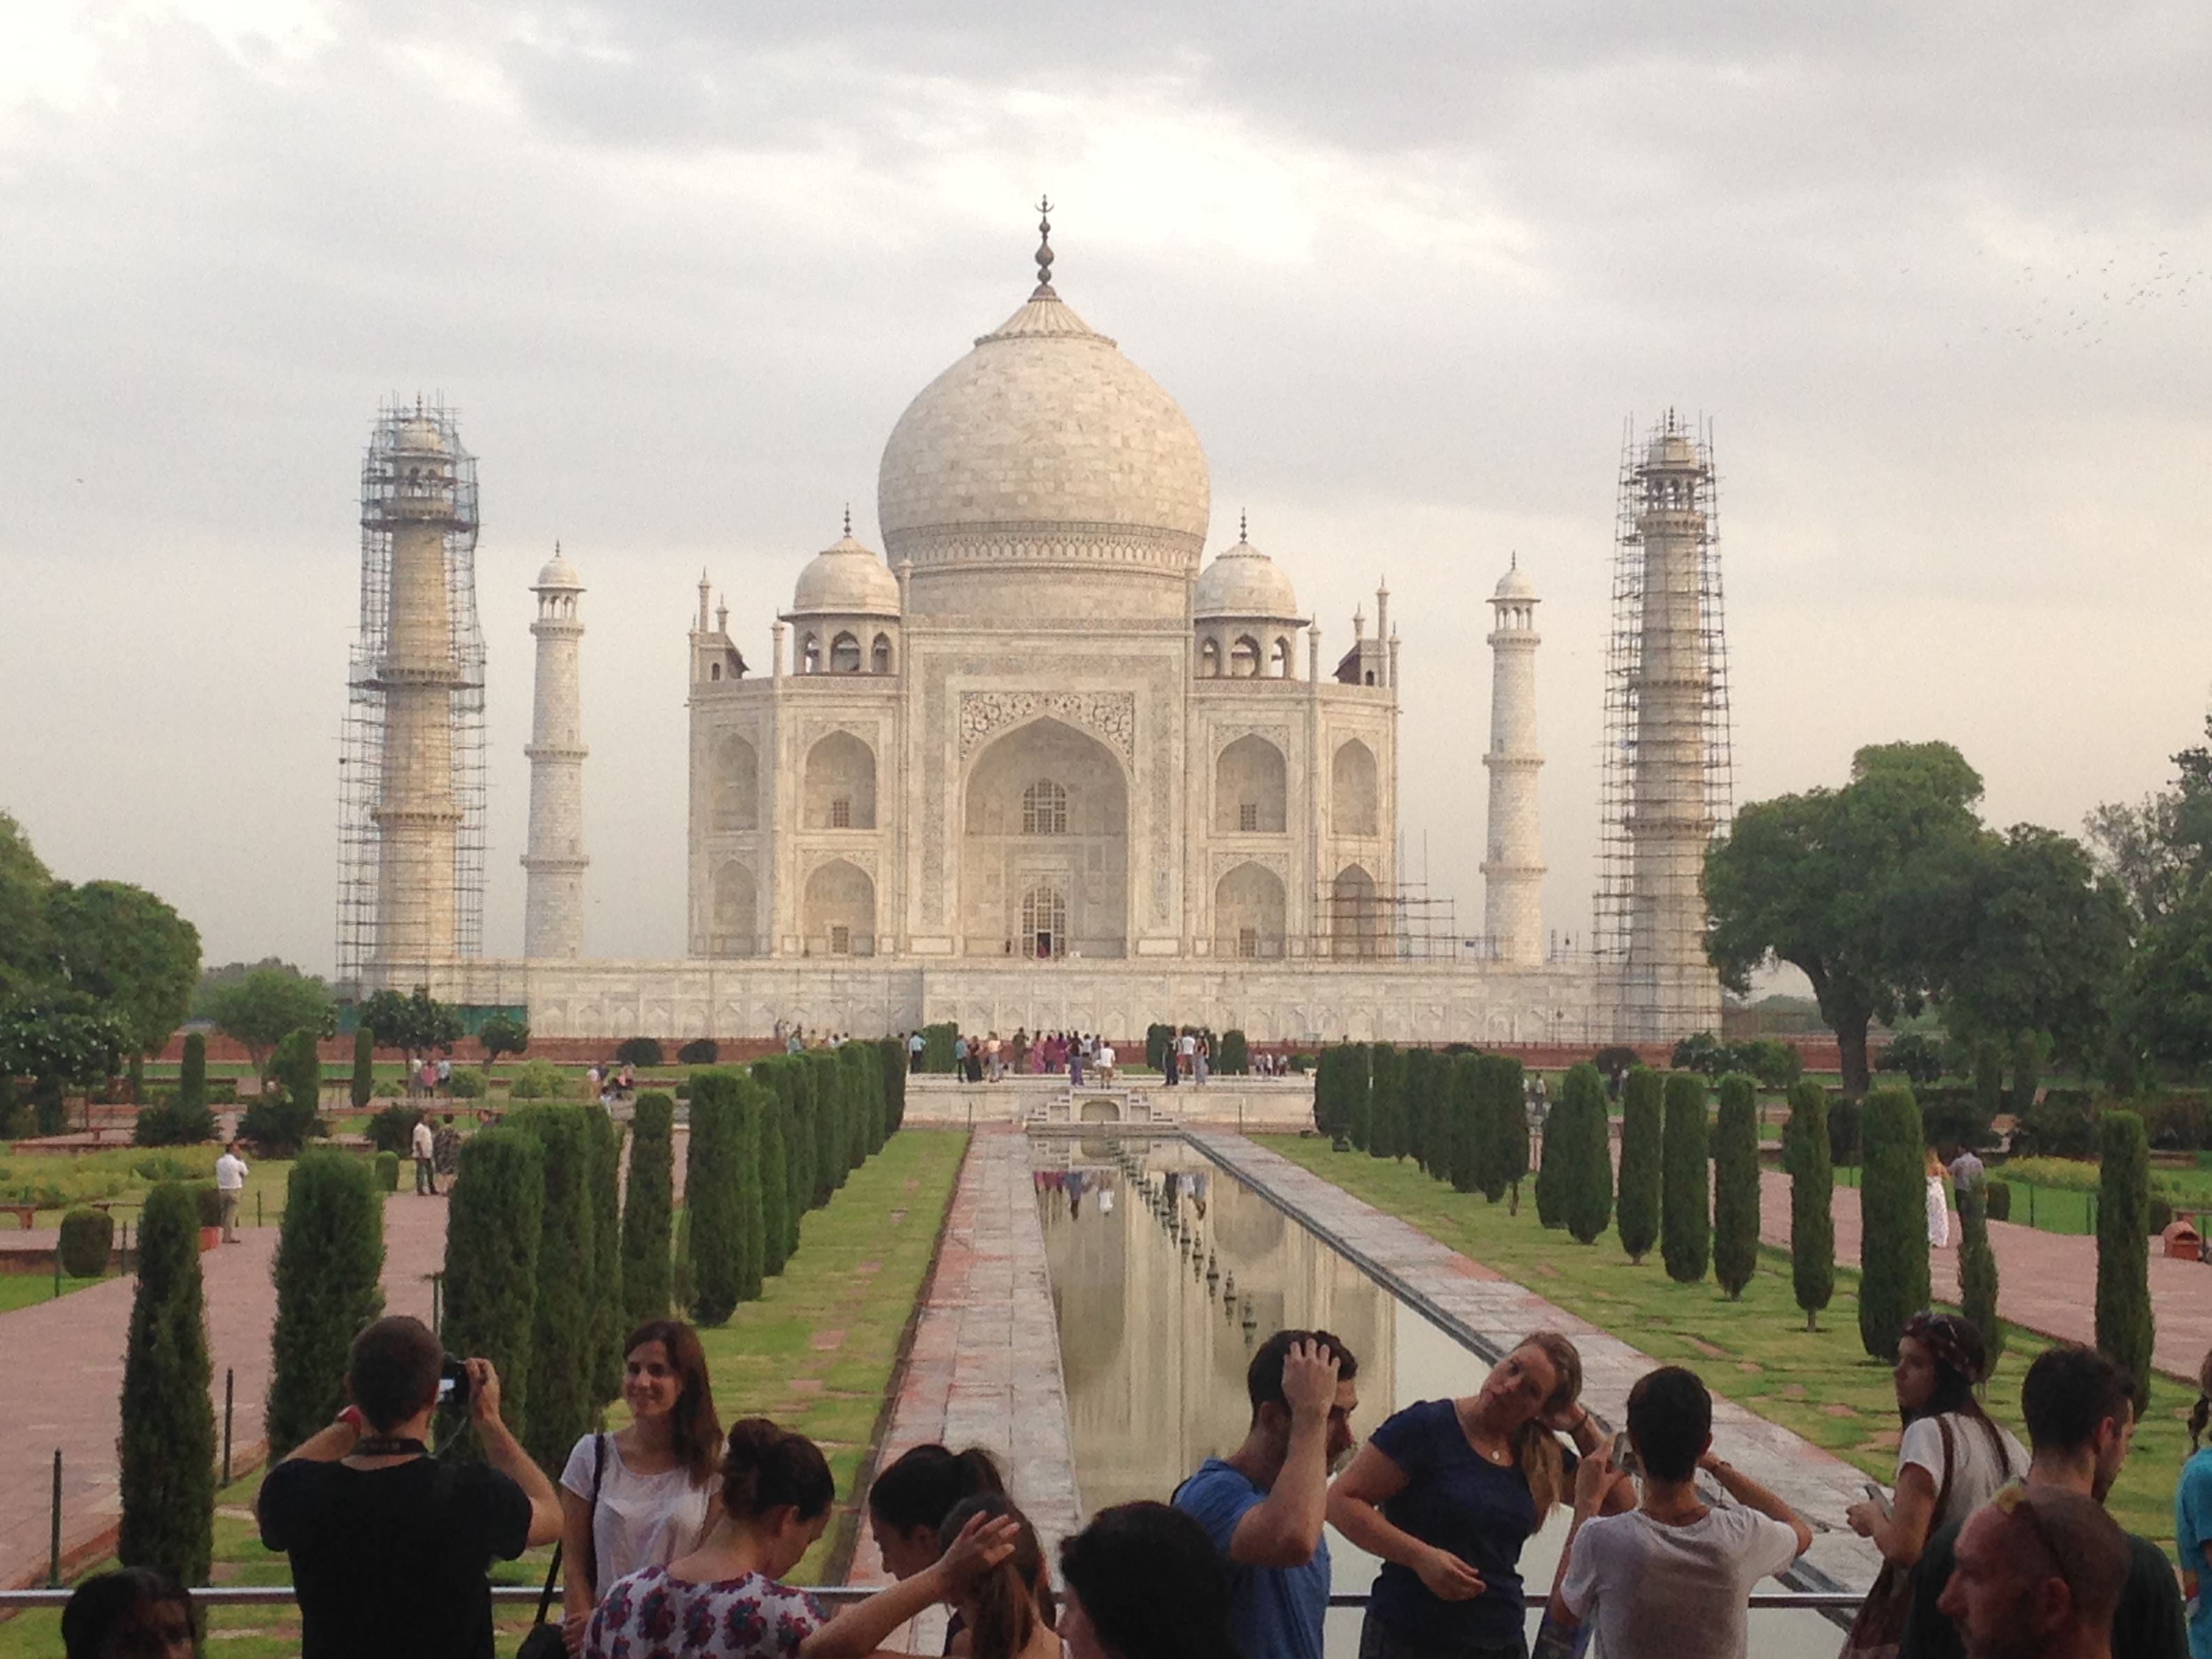 descriptive essay on tajmahal The taj mahal was built by the mughal emperor shahjahan, in the living memory of his queen, mumtaz mahal it stands on the right bank of the river yamuna at agra it is built of pure white marble and looks magnificent on a full moon night.